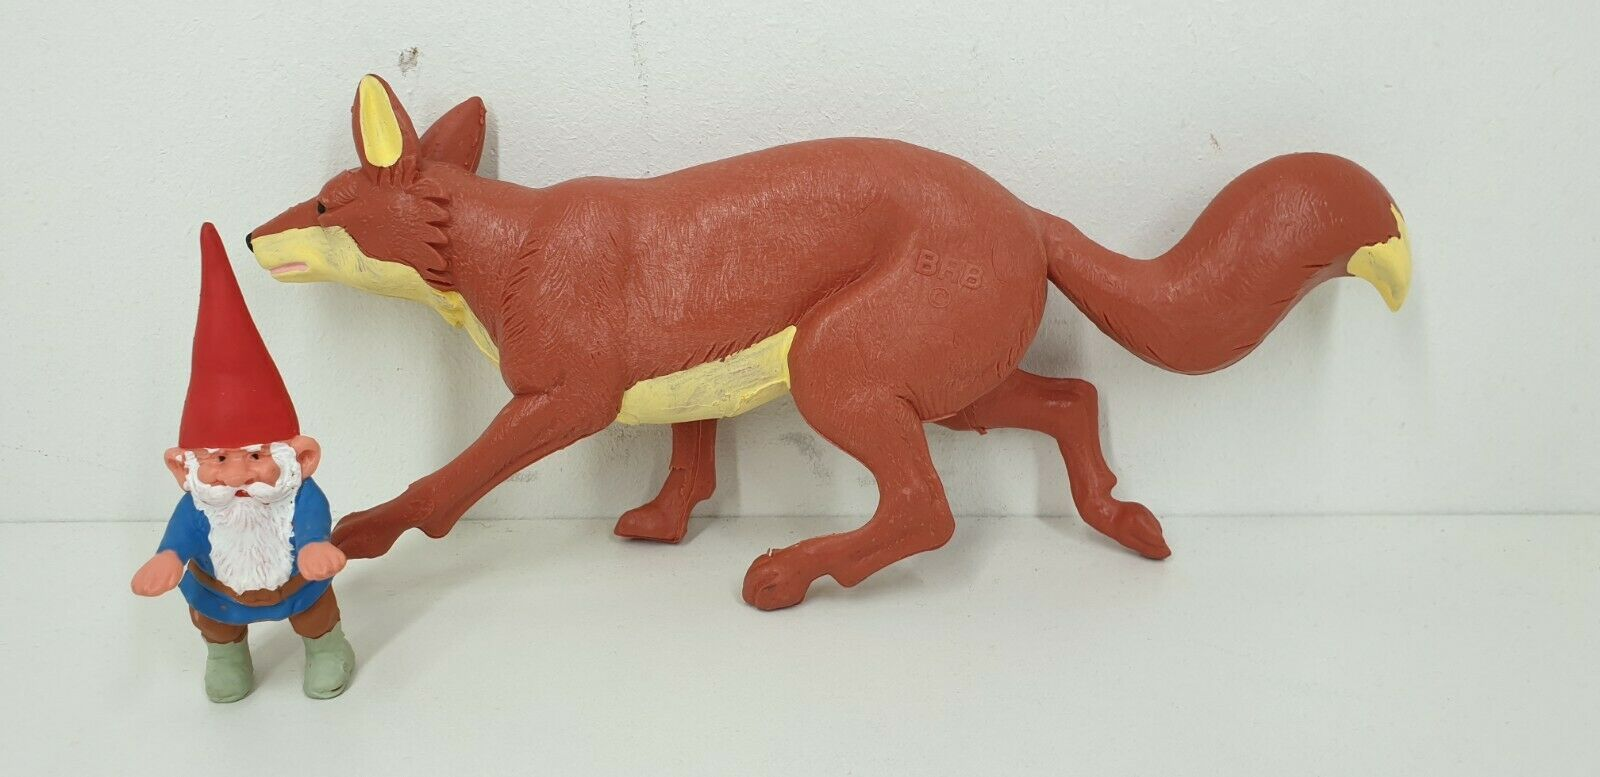 Rare David the Gnome Fox Swift and standing pvc figure BRB Star Toys 80's